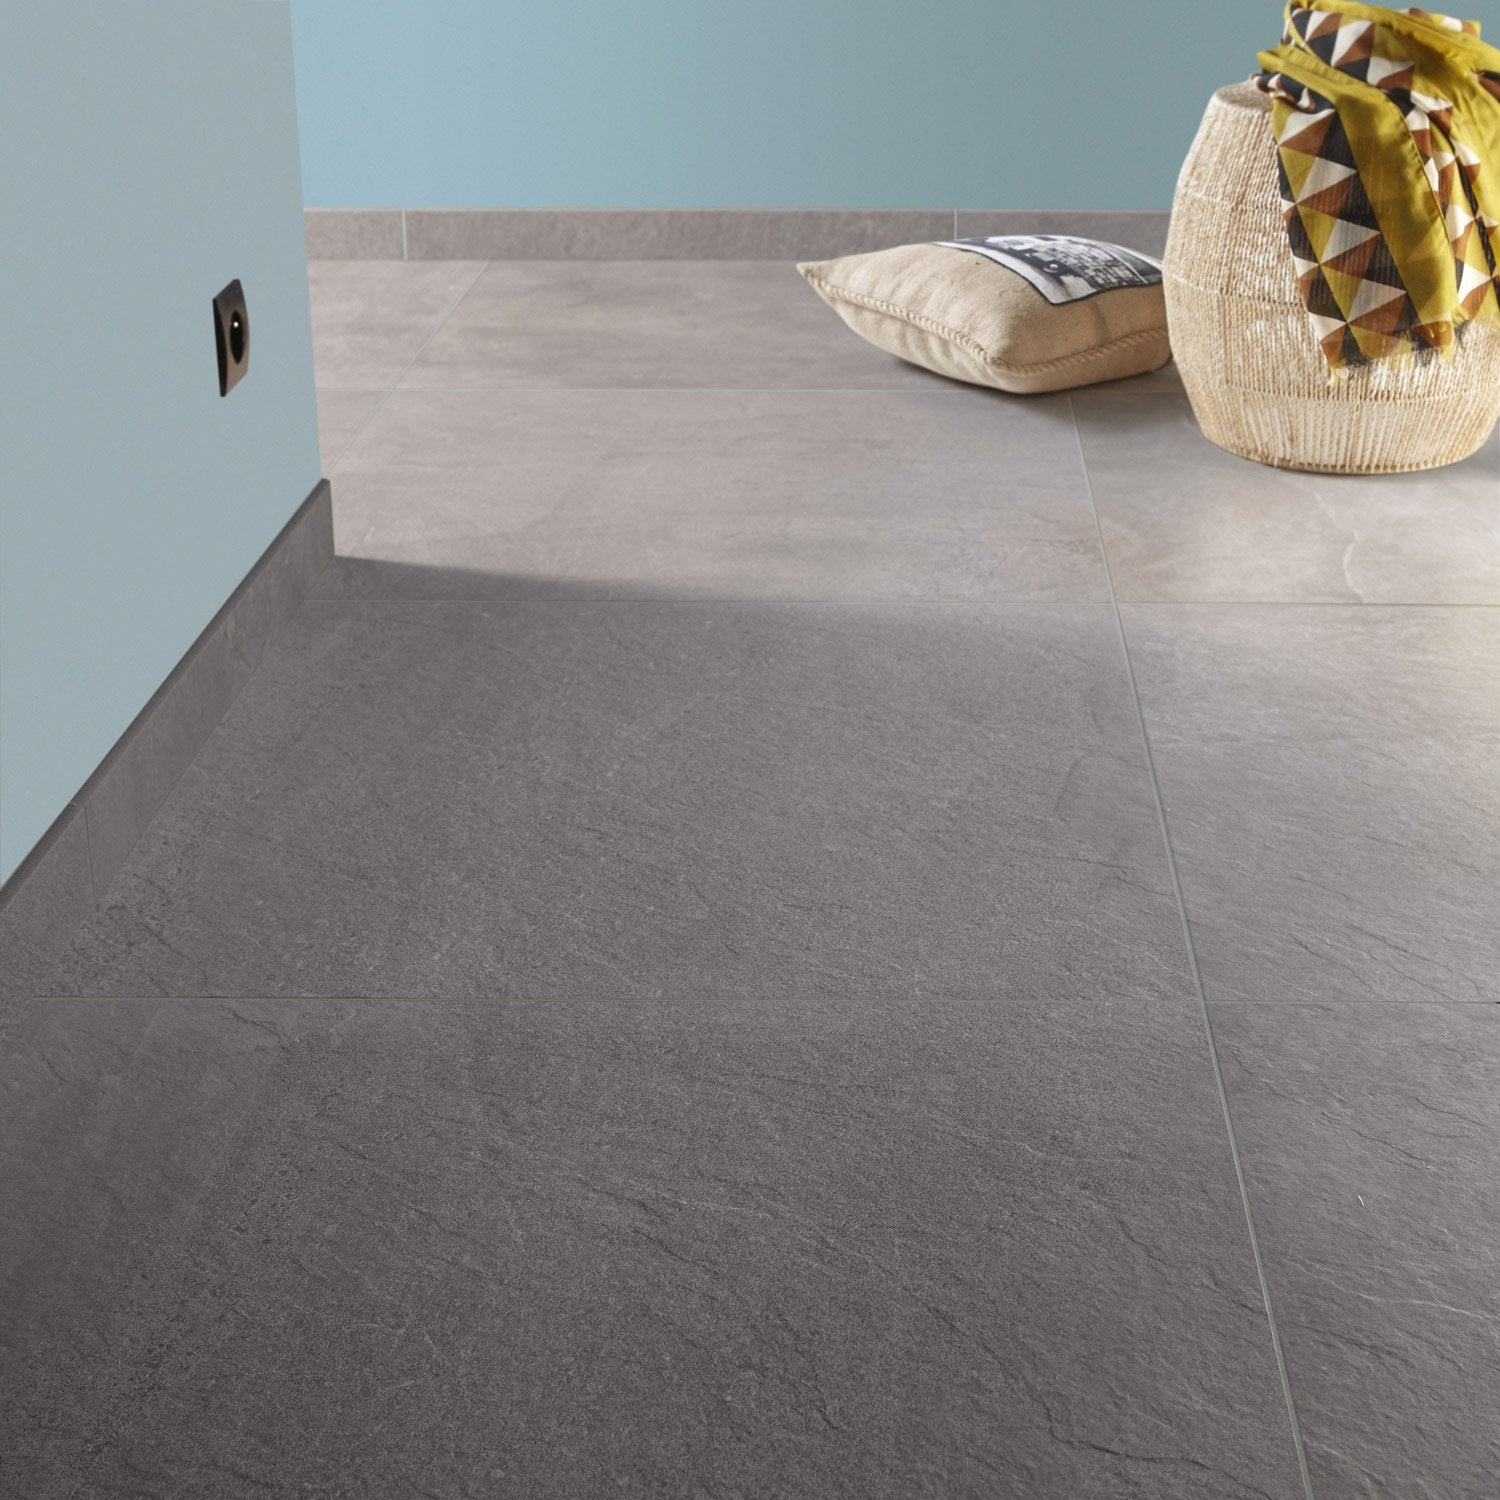 Carrelage 75 75 for Carrelage 75x75 gris